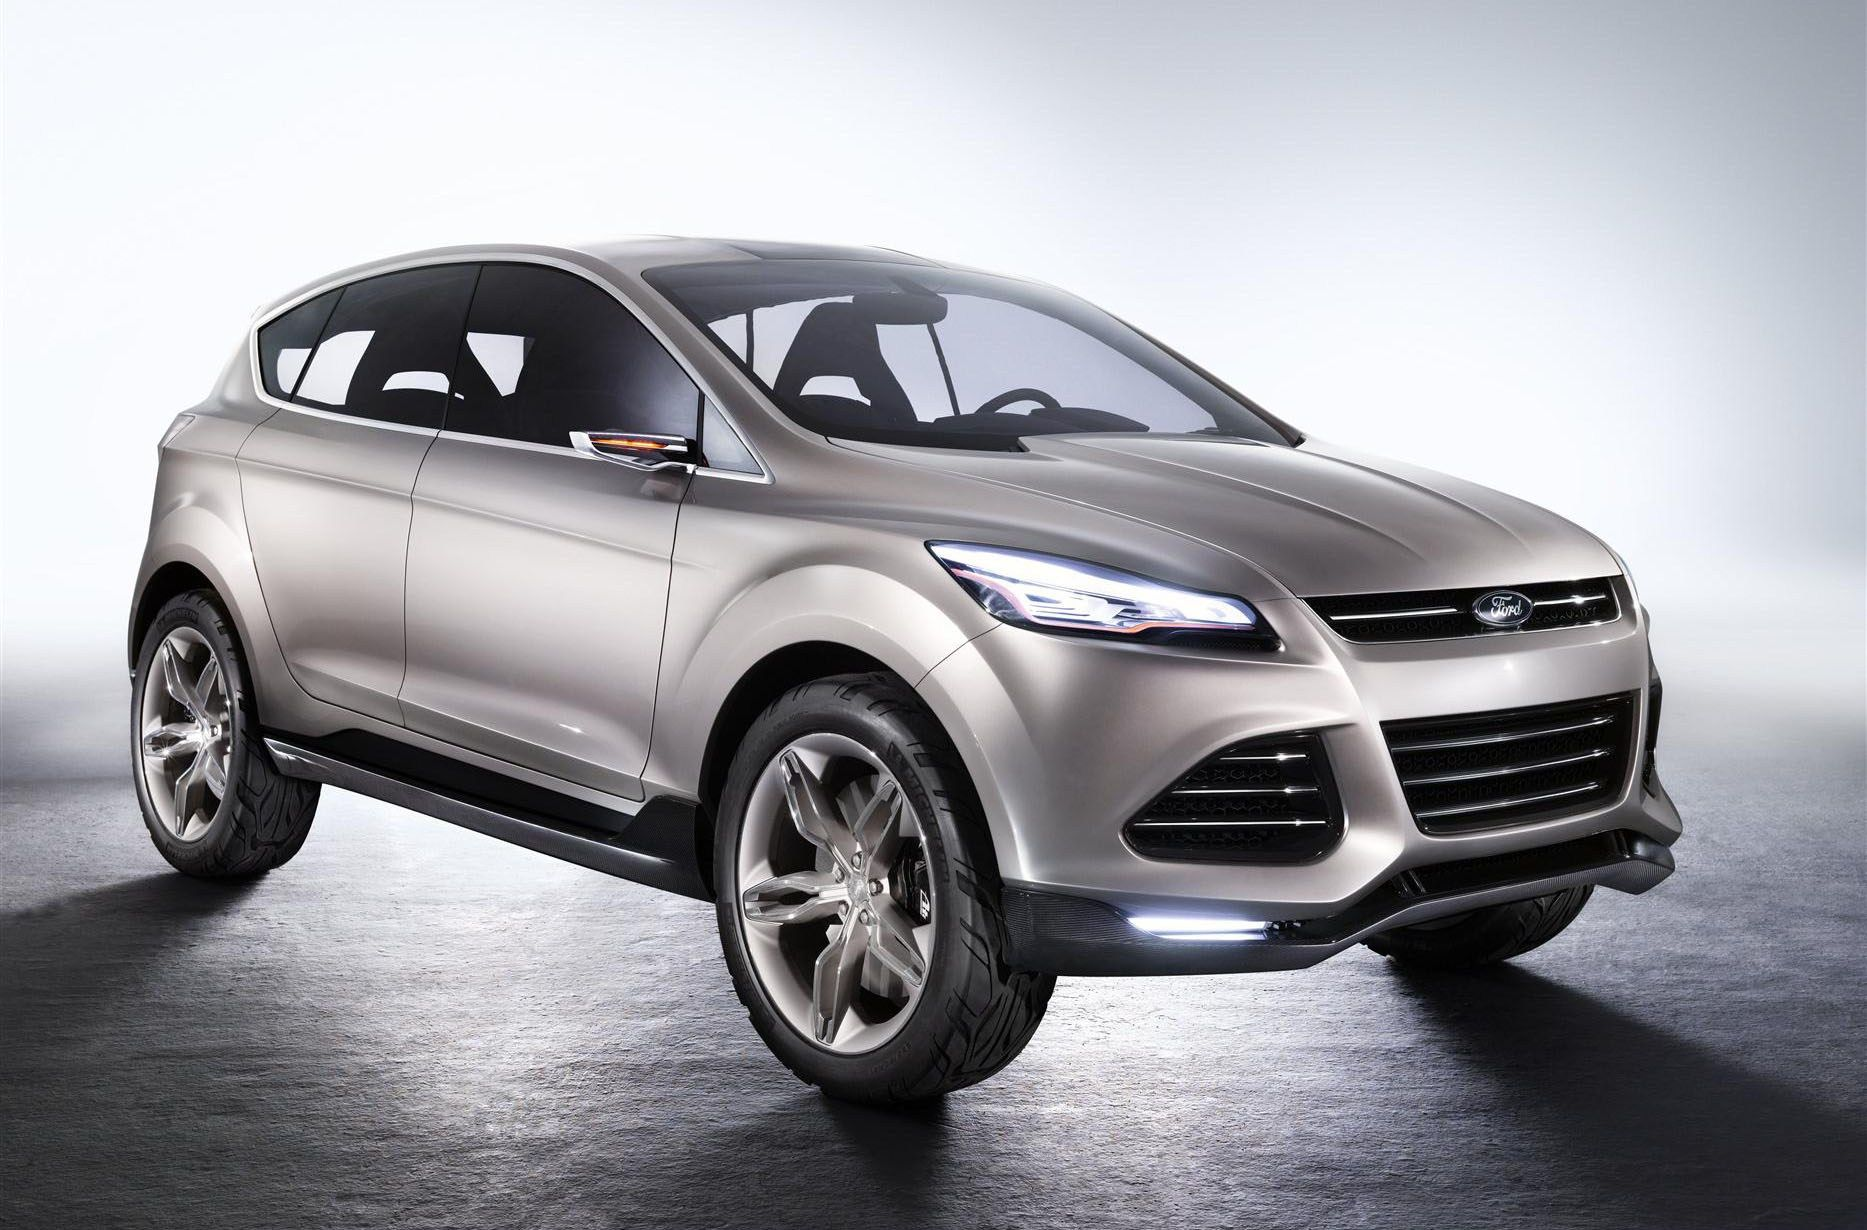 2020 Ford Escape Redesign, Concept, Price, Release Date